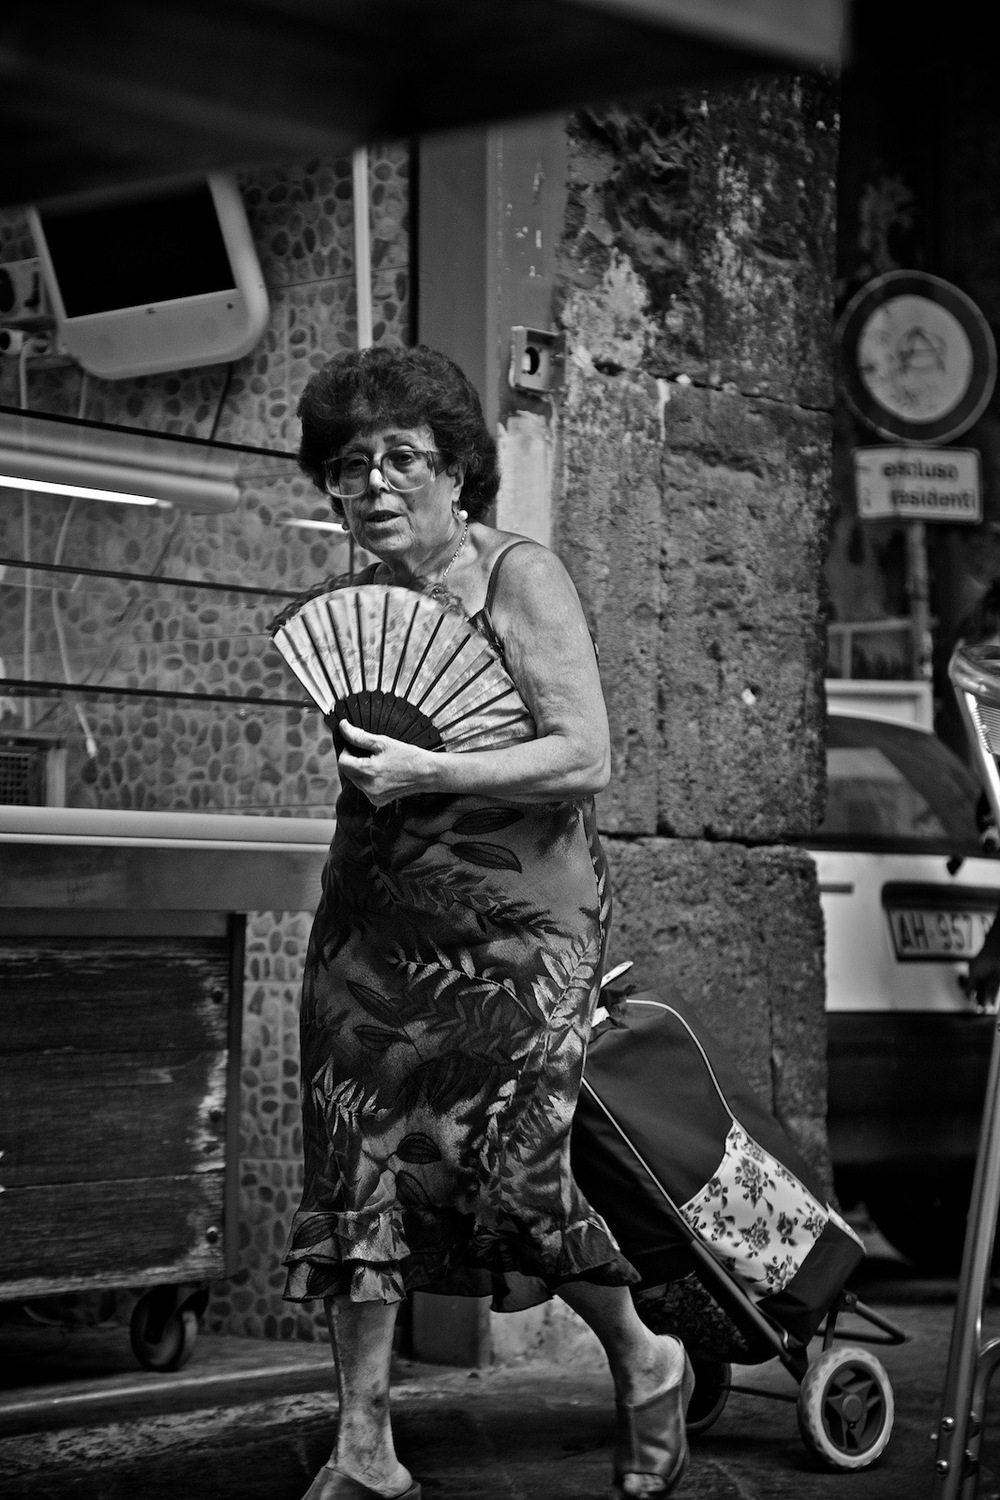 faces-of-napoli-denis-bosnic-photography-naples-bw-spaccanapoli-summer-20.jpg